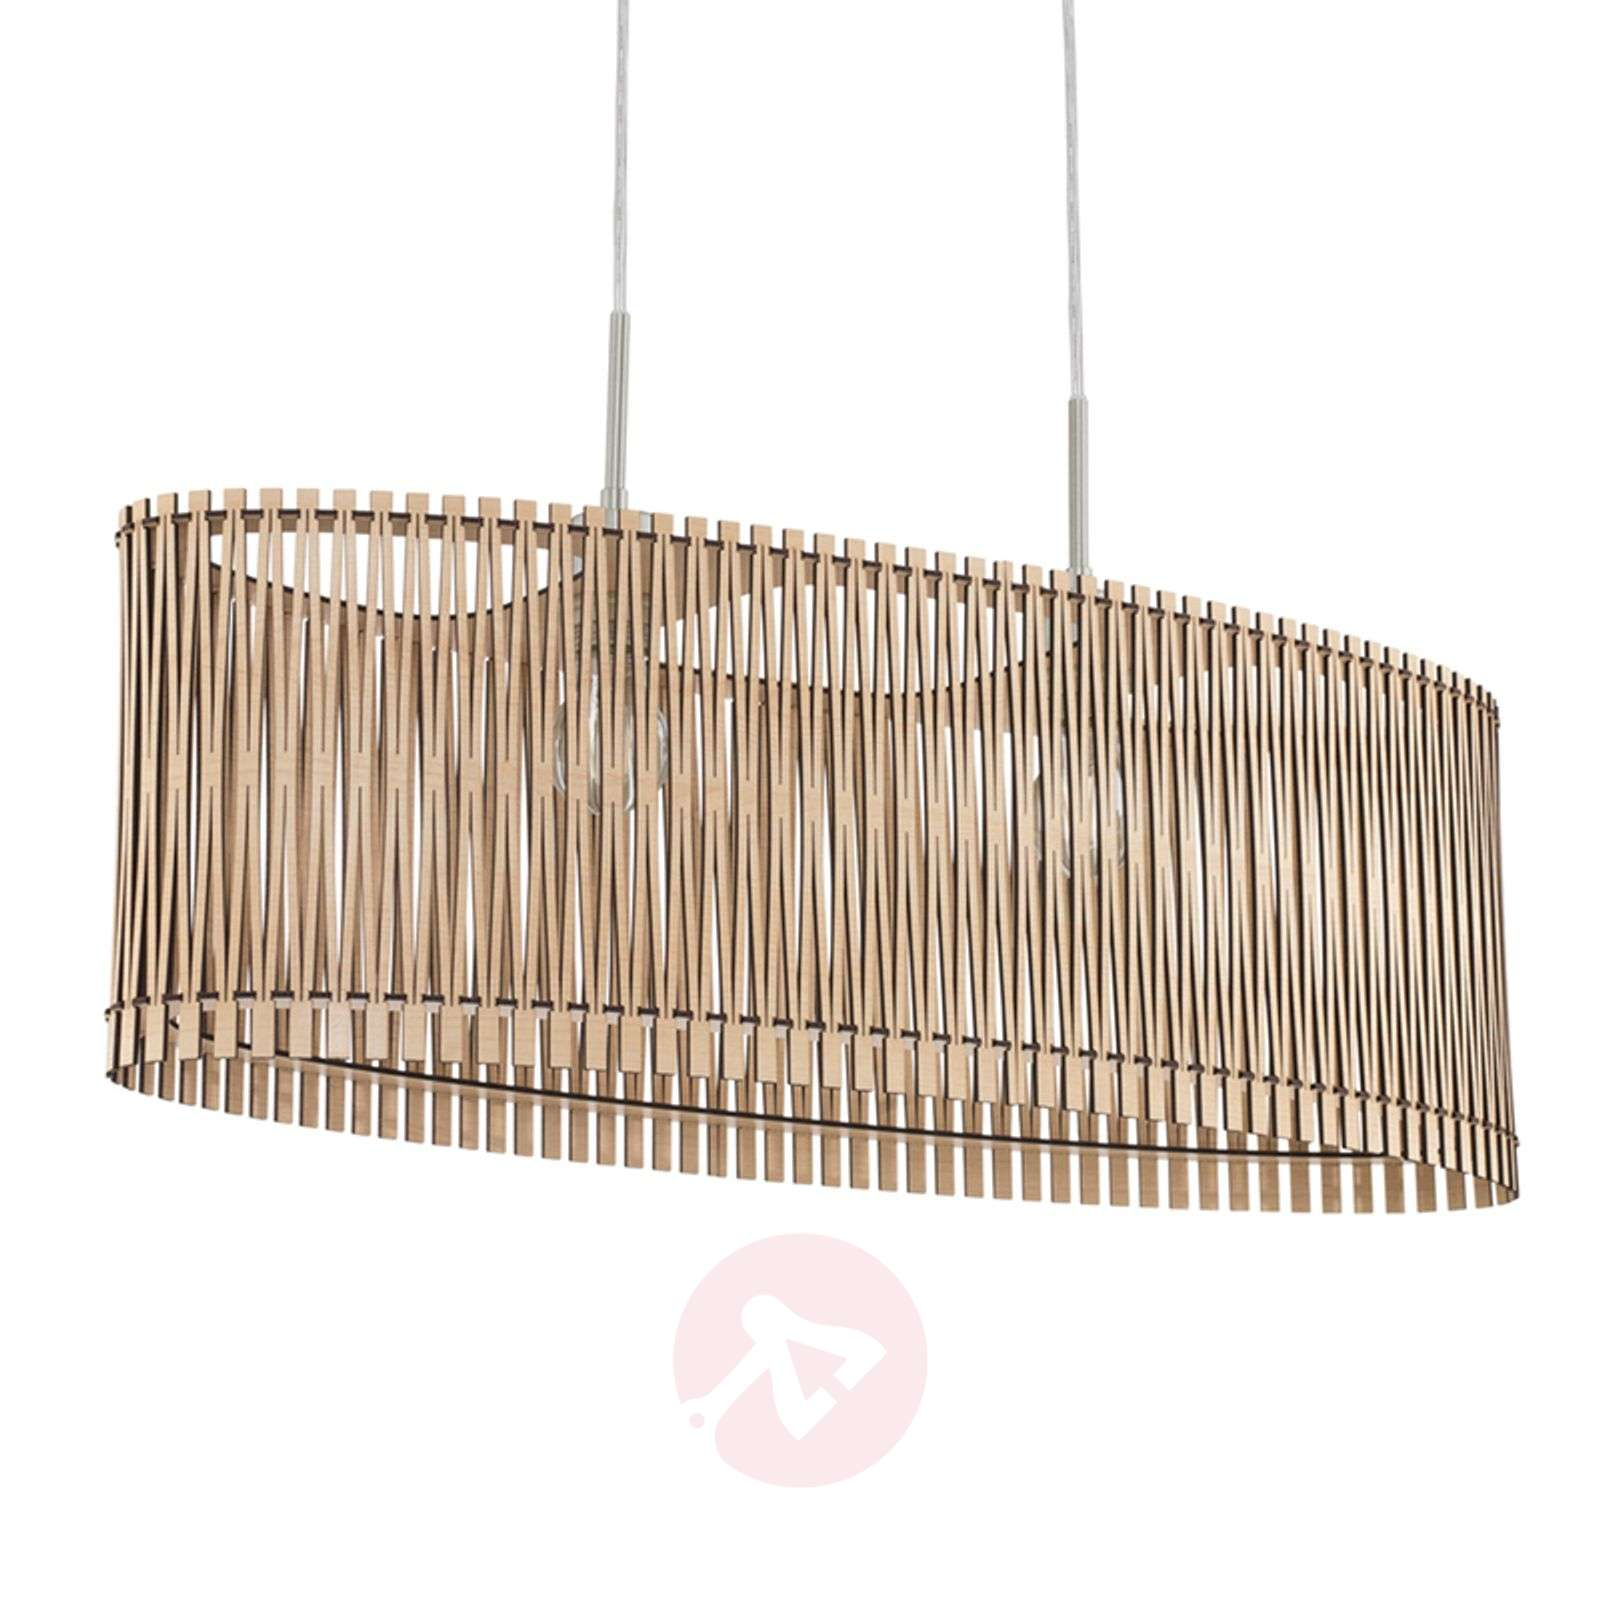 Suspension naturelle Sendero en bois-3031912-01